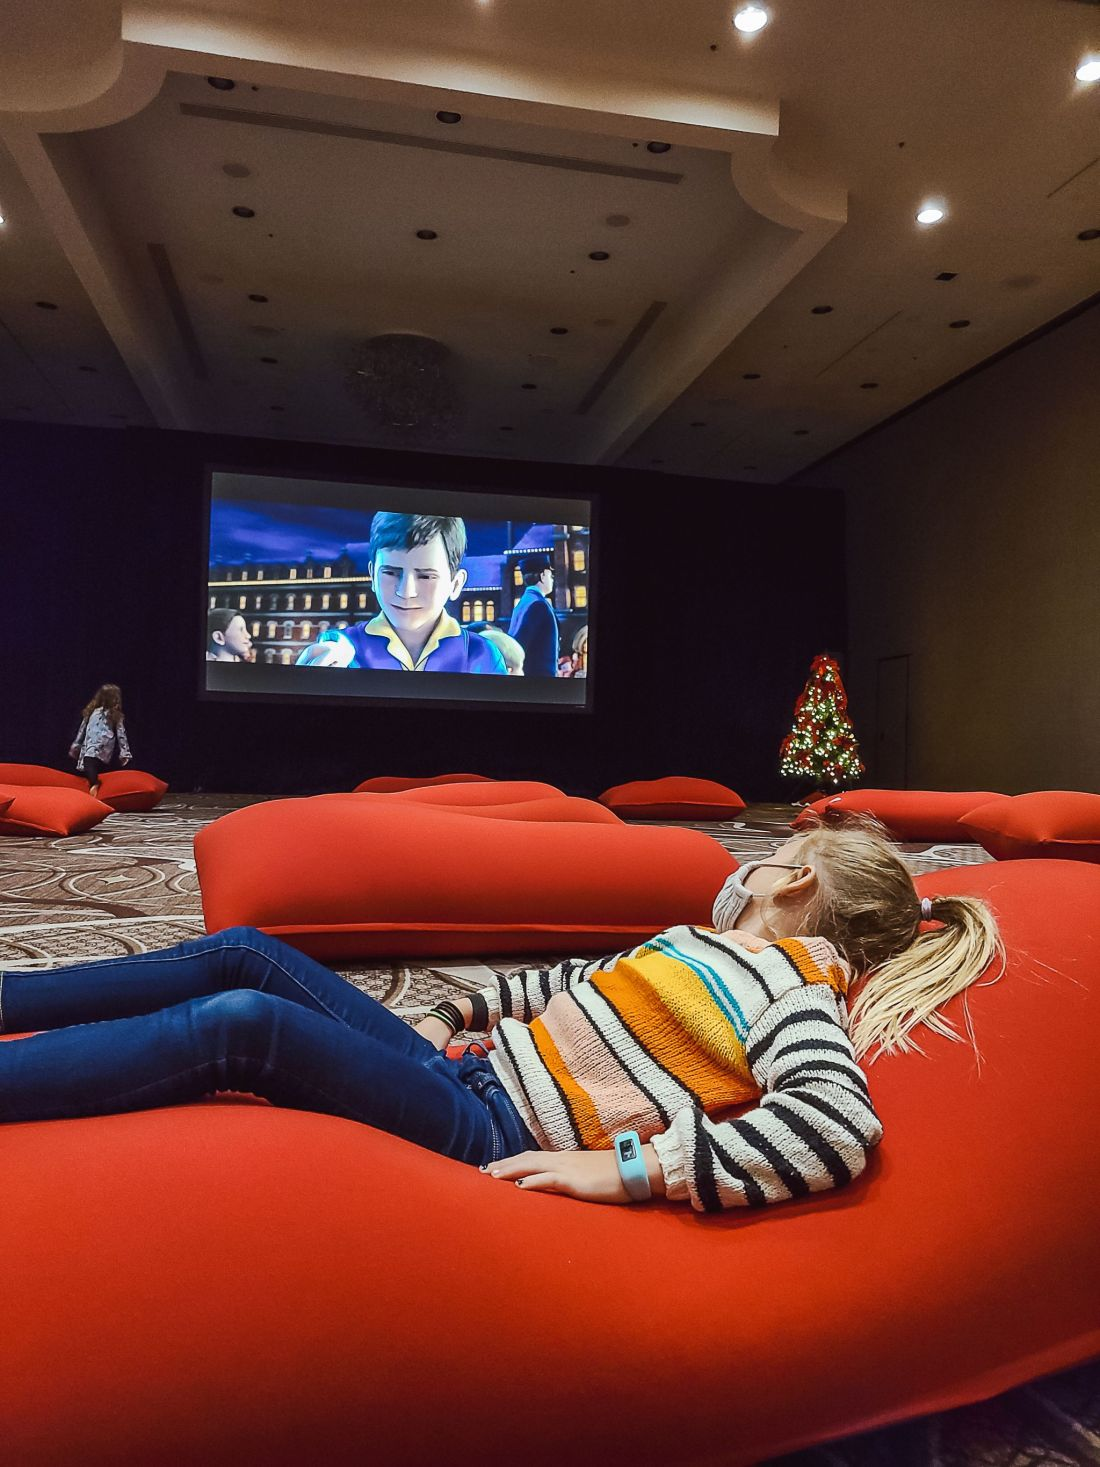 Gaylord Opryland Christmas by popular Nashville blog, Modern Day Moguls: image of a young girl laying on a red bean bag and watching the Polar Express on big screen.